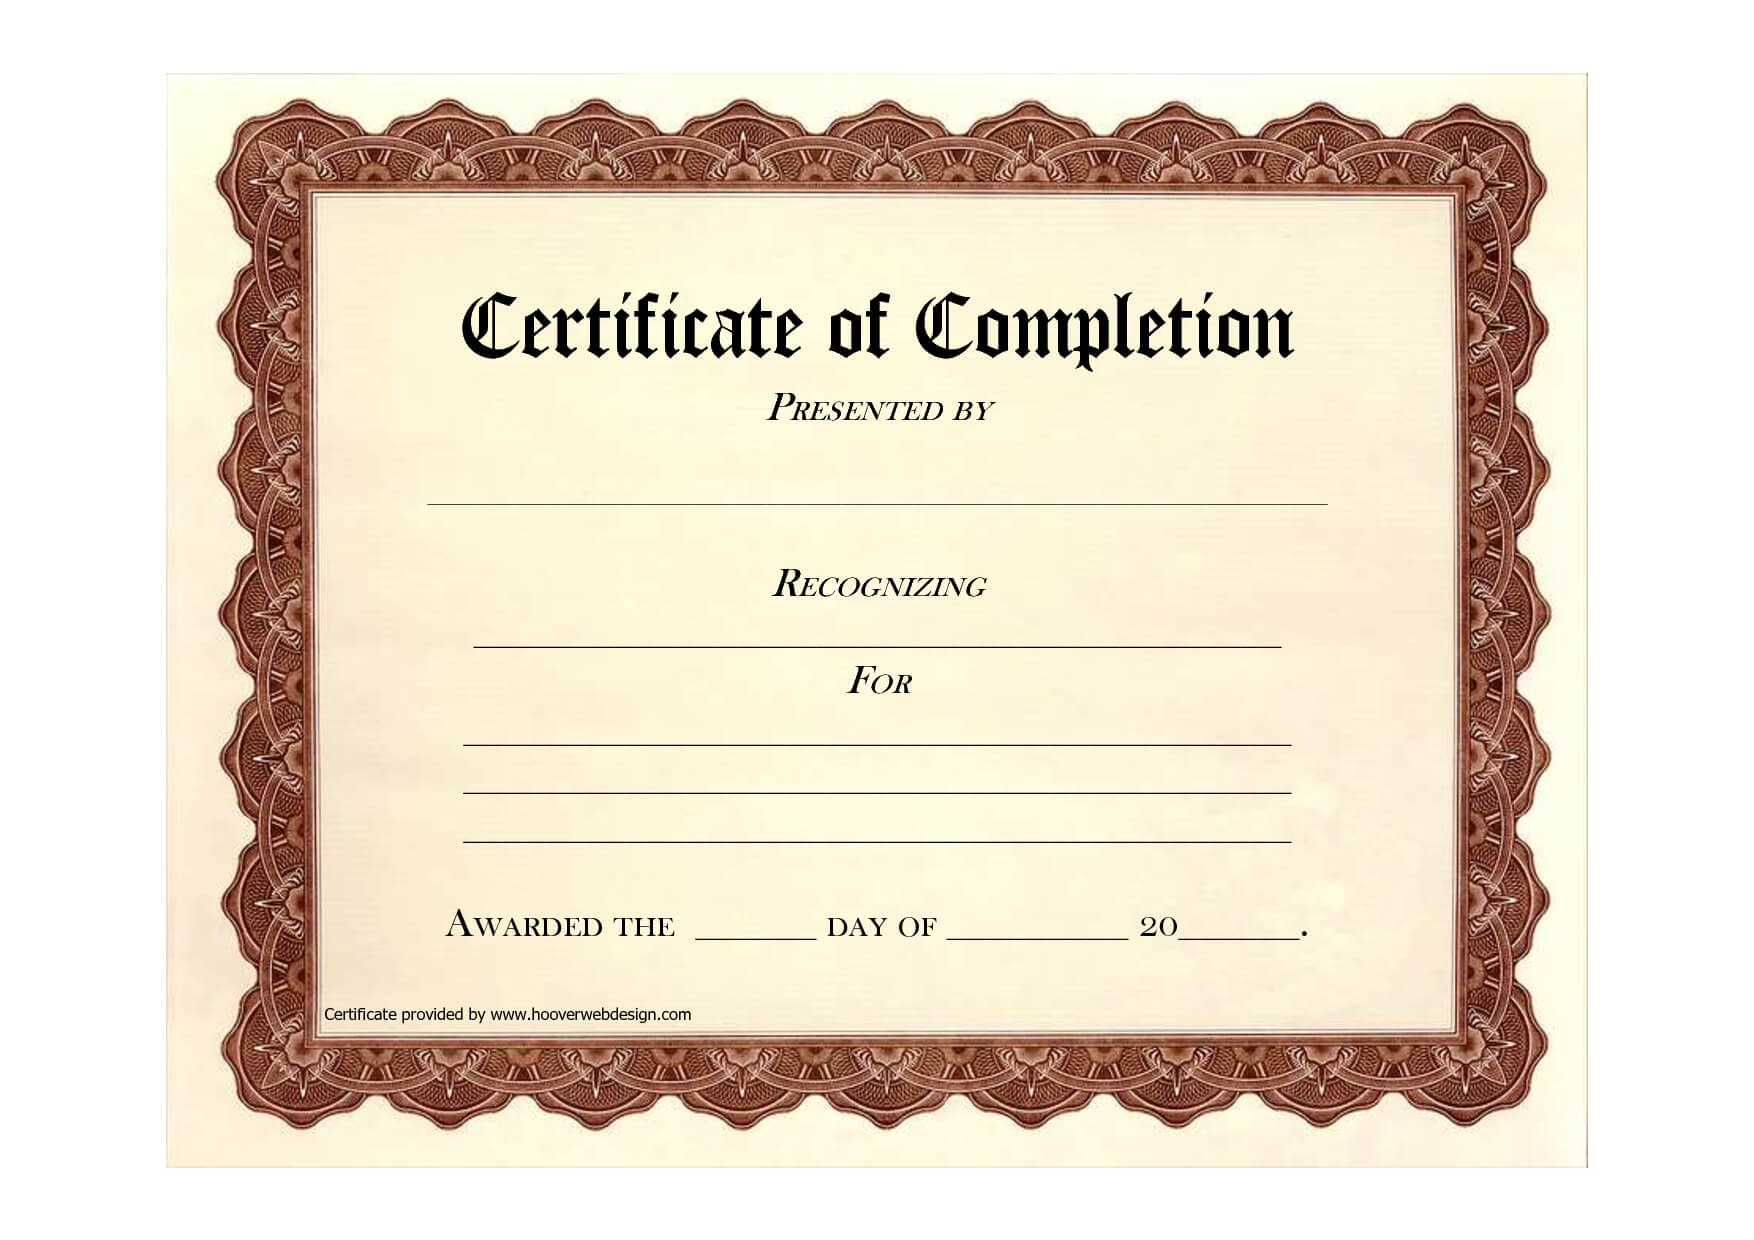 Completion Certificates Templates Free Download – Uyma.tk Intended For Certificate Of Completion Free Template Word